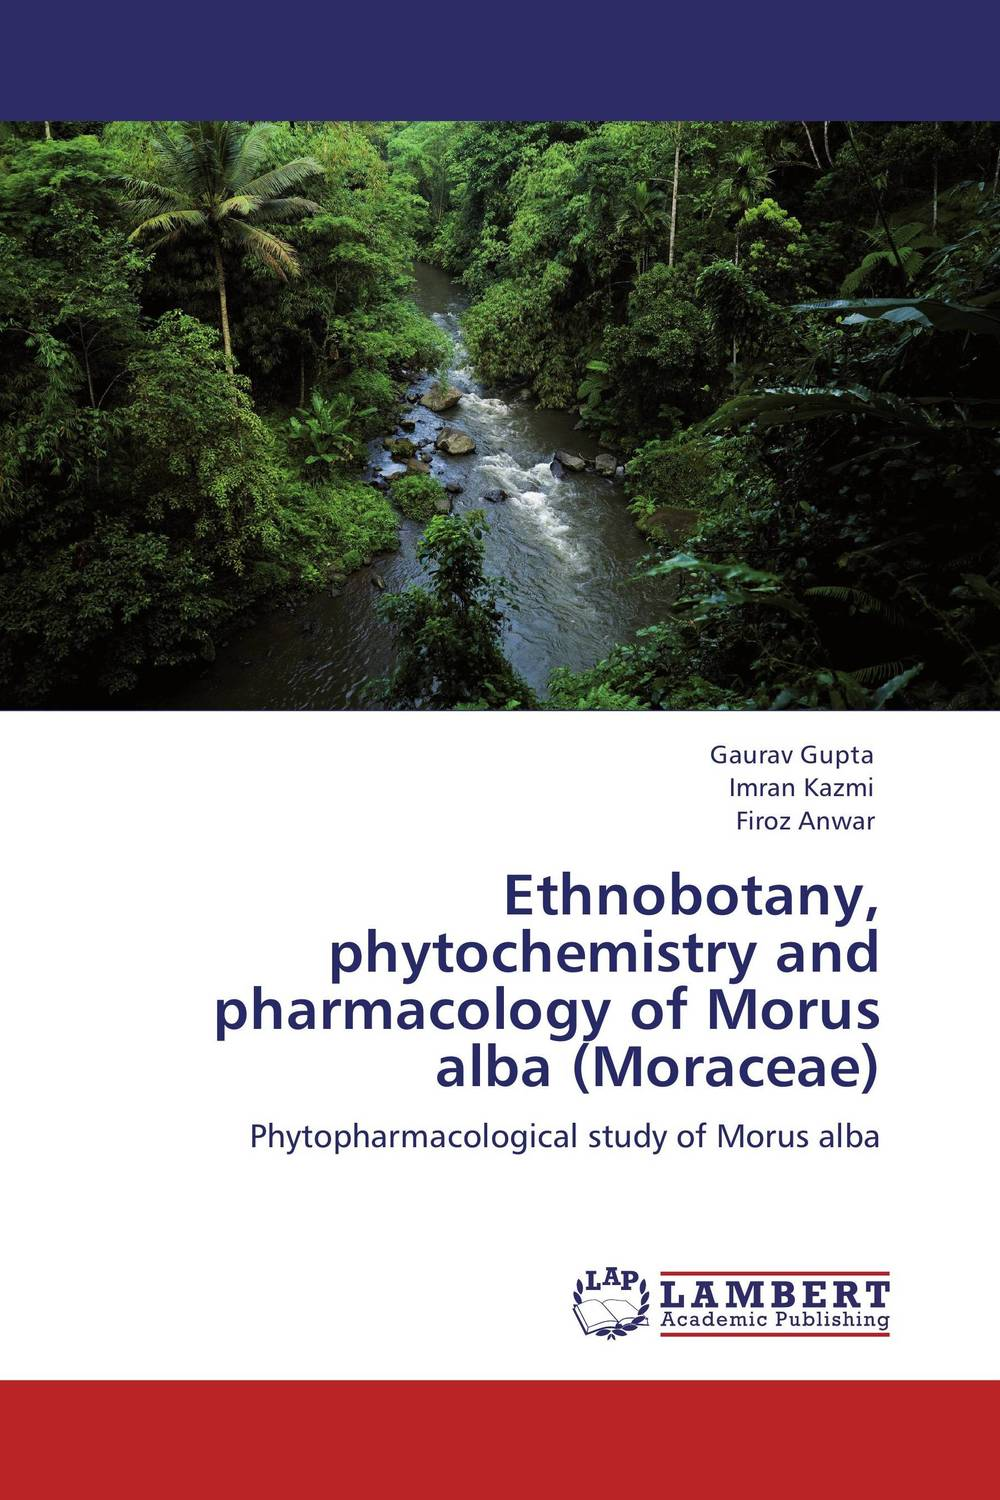 Ethnobotany, phytochemistry and pharmacology of Morus alba (Moraceae) laxman sawant bala prabhakar and nancy pandita phytochemistry and bioactivity of enicostemma littorale